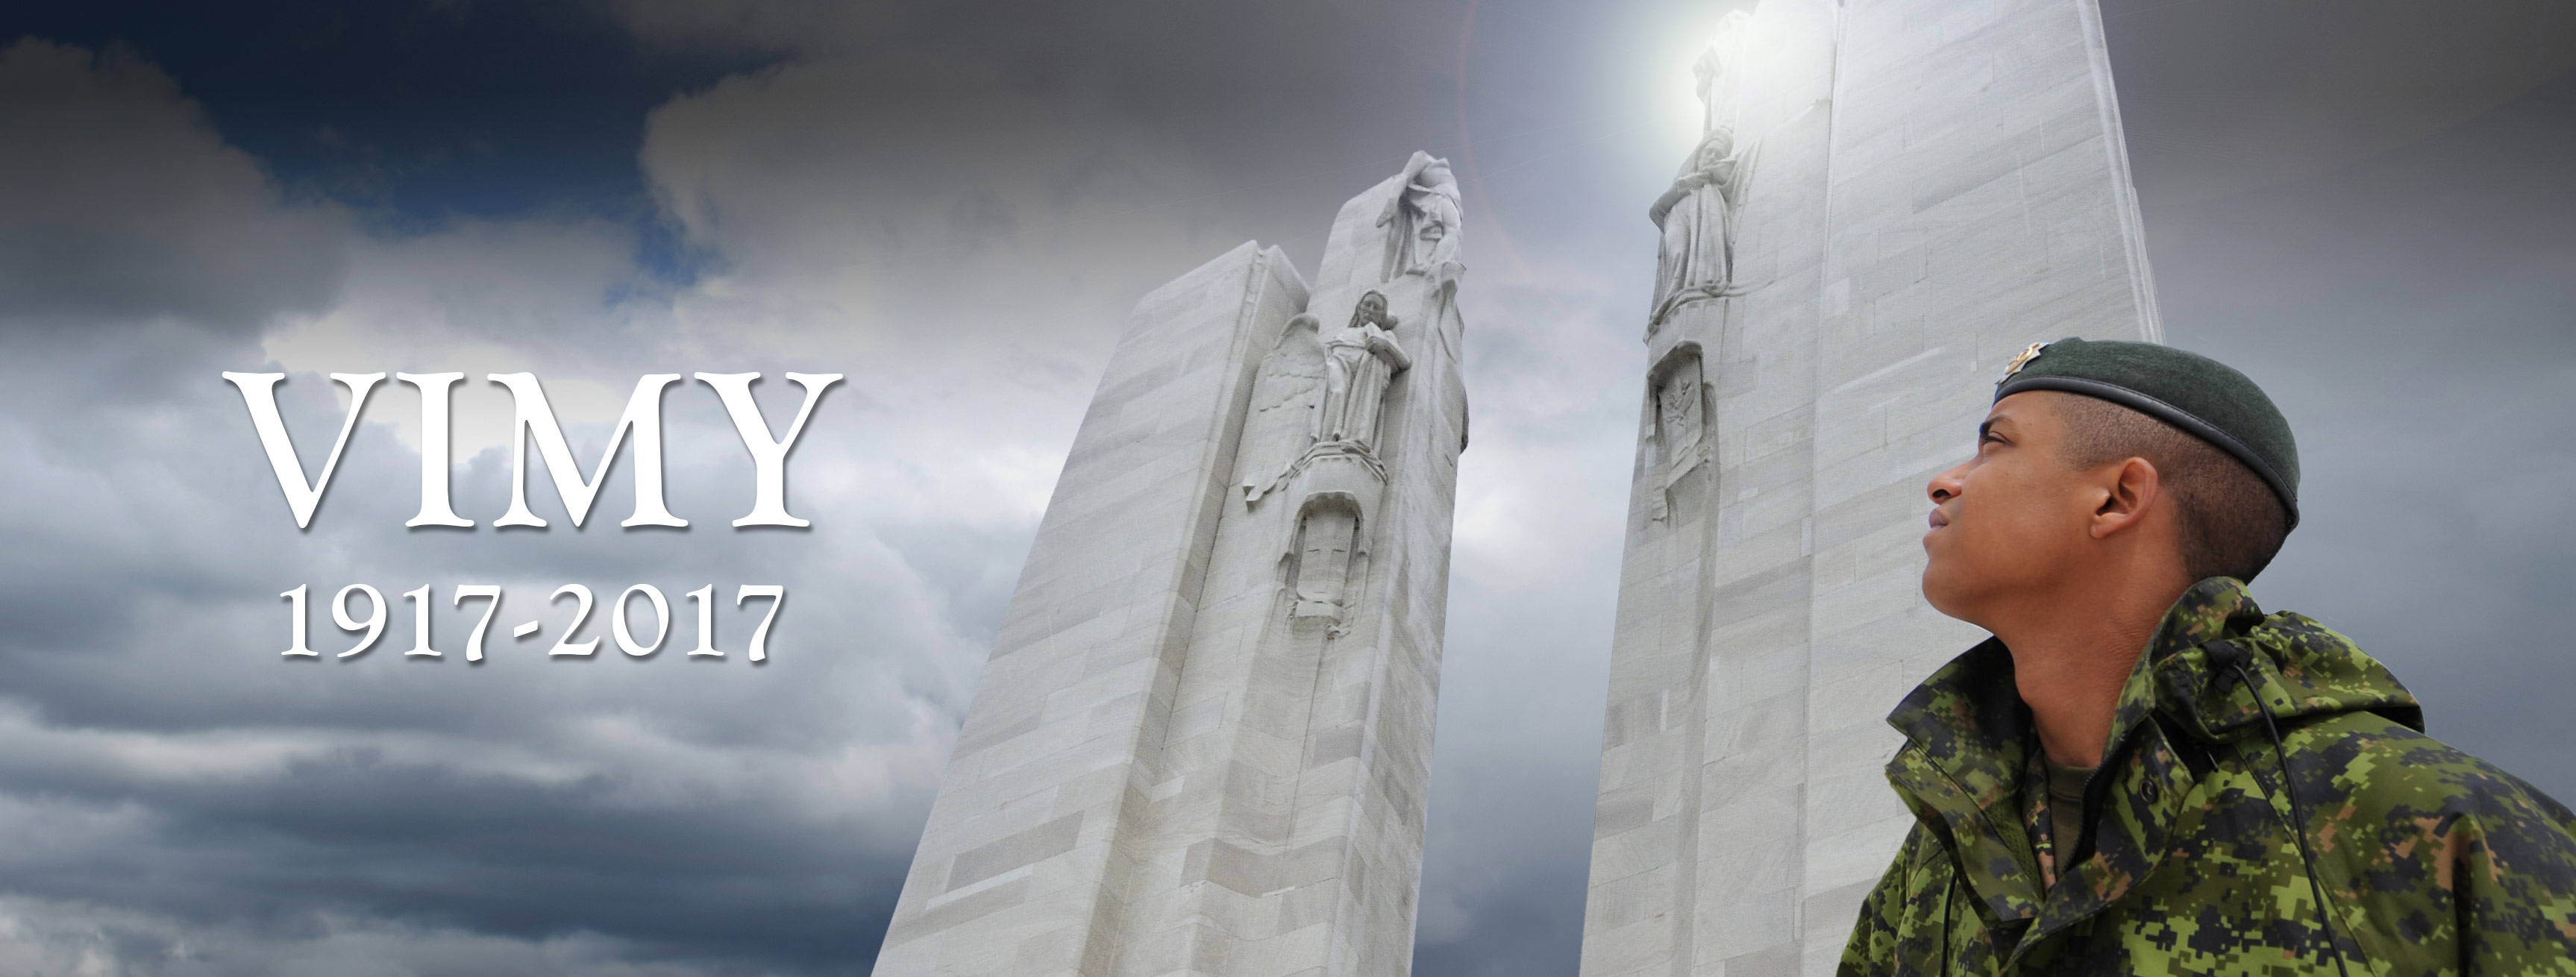 the battle of vimy ridge and 2017-6-1 free online library: the battle of vimy ridge: part 3: canadian corps succeeds where others had failed(history feature) by esprit de corps history military and naval science military strategy analysis.